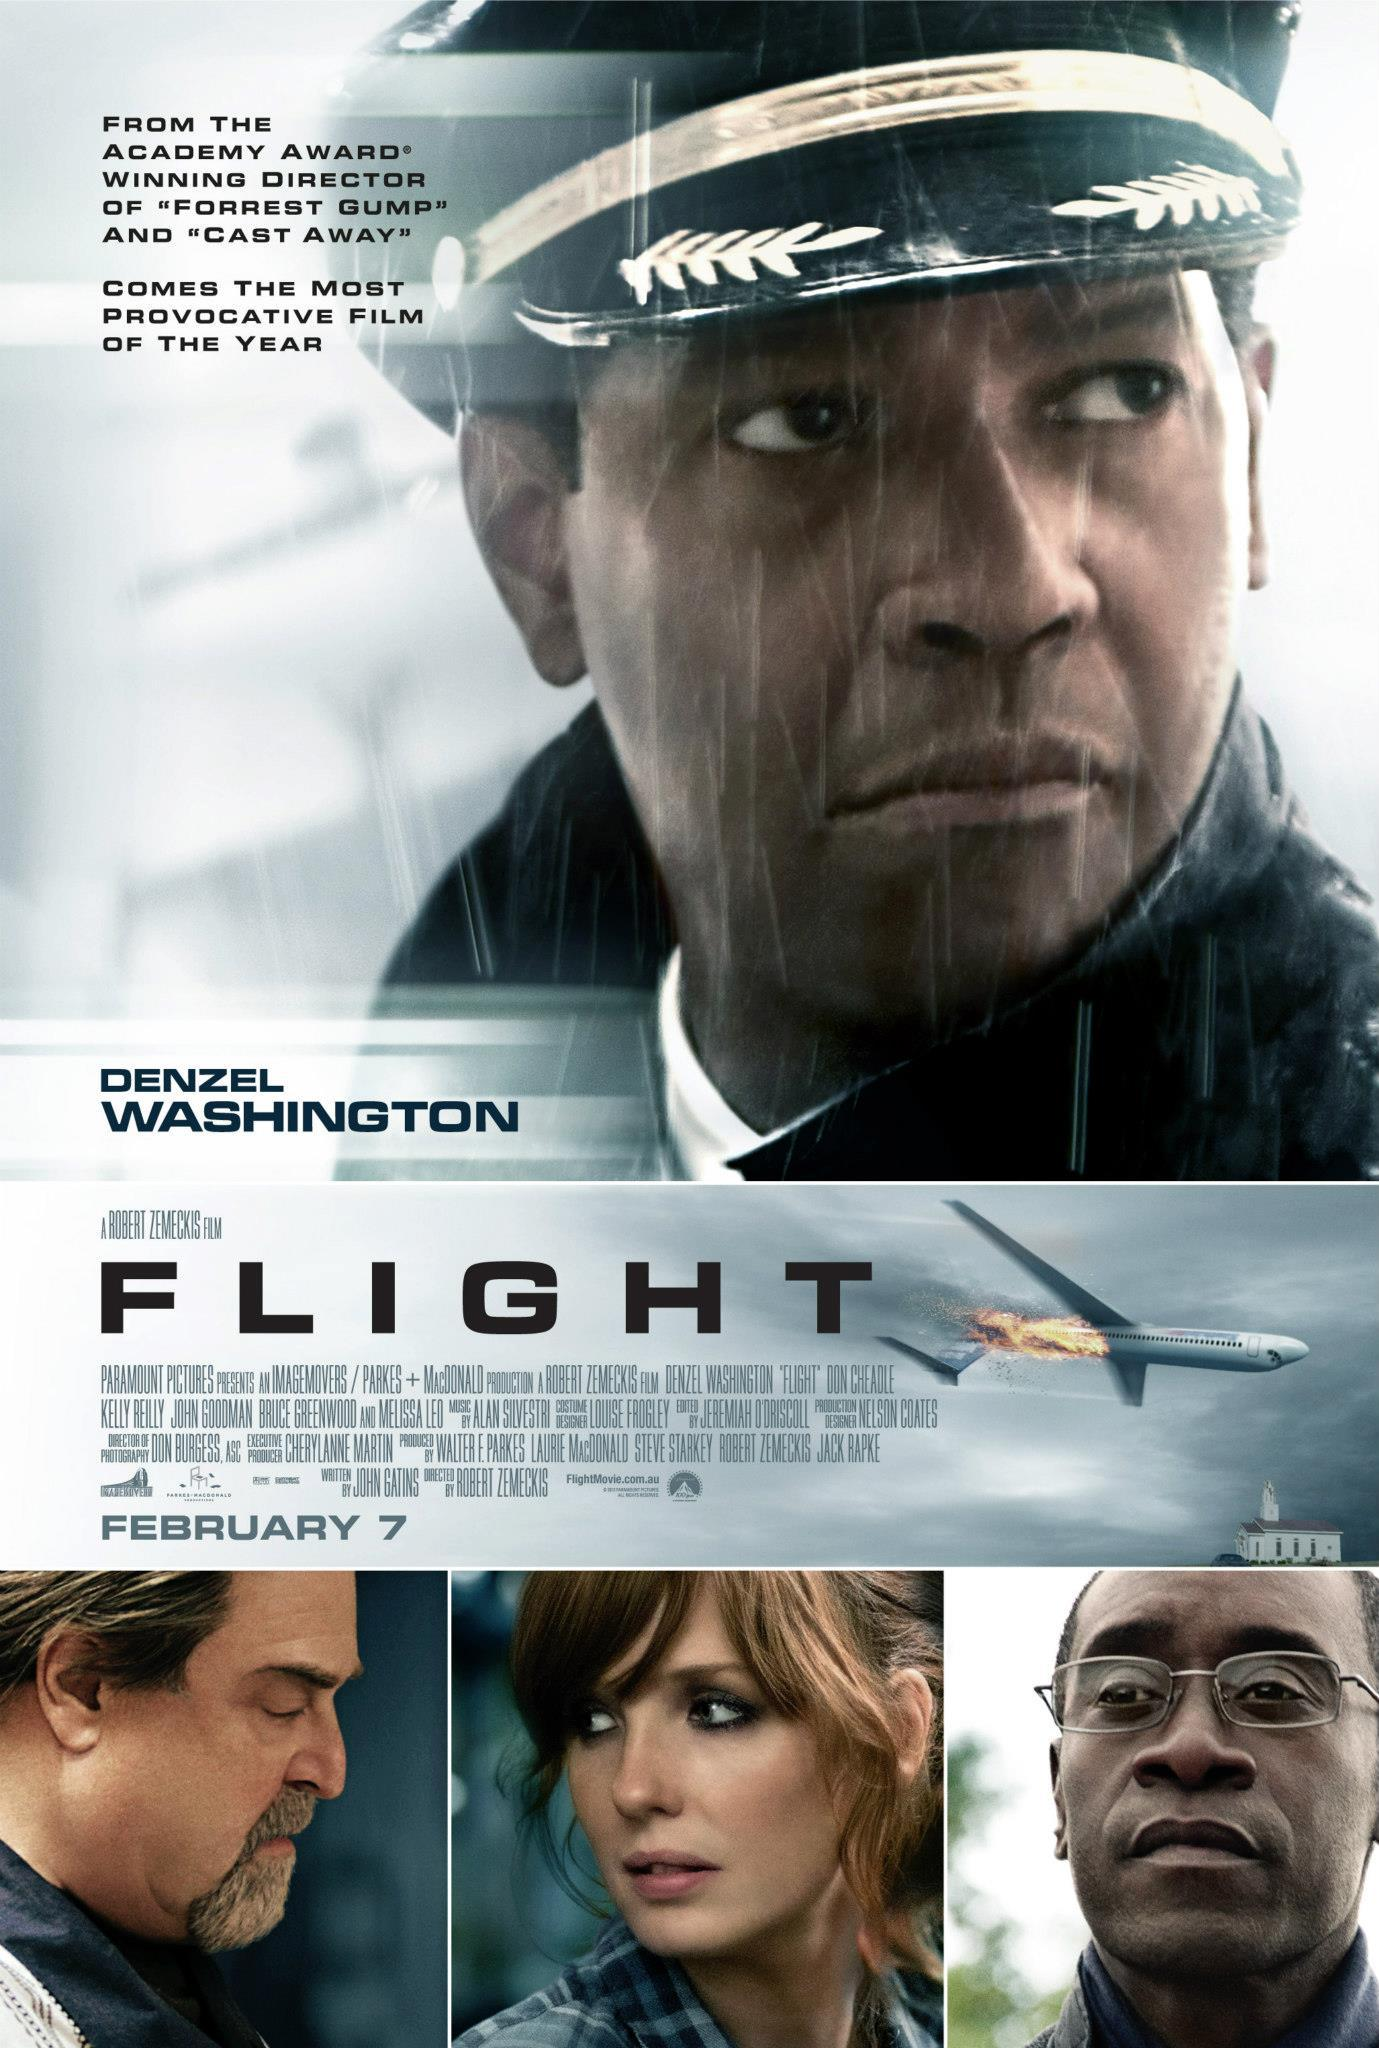 [Pelicula] Flight [El Vuelo] - HD 720p Audio Original Subt